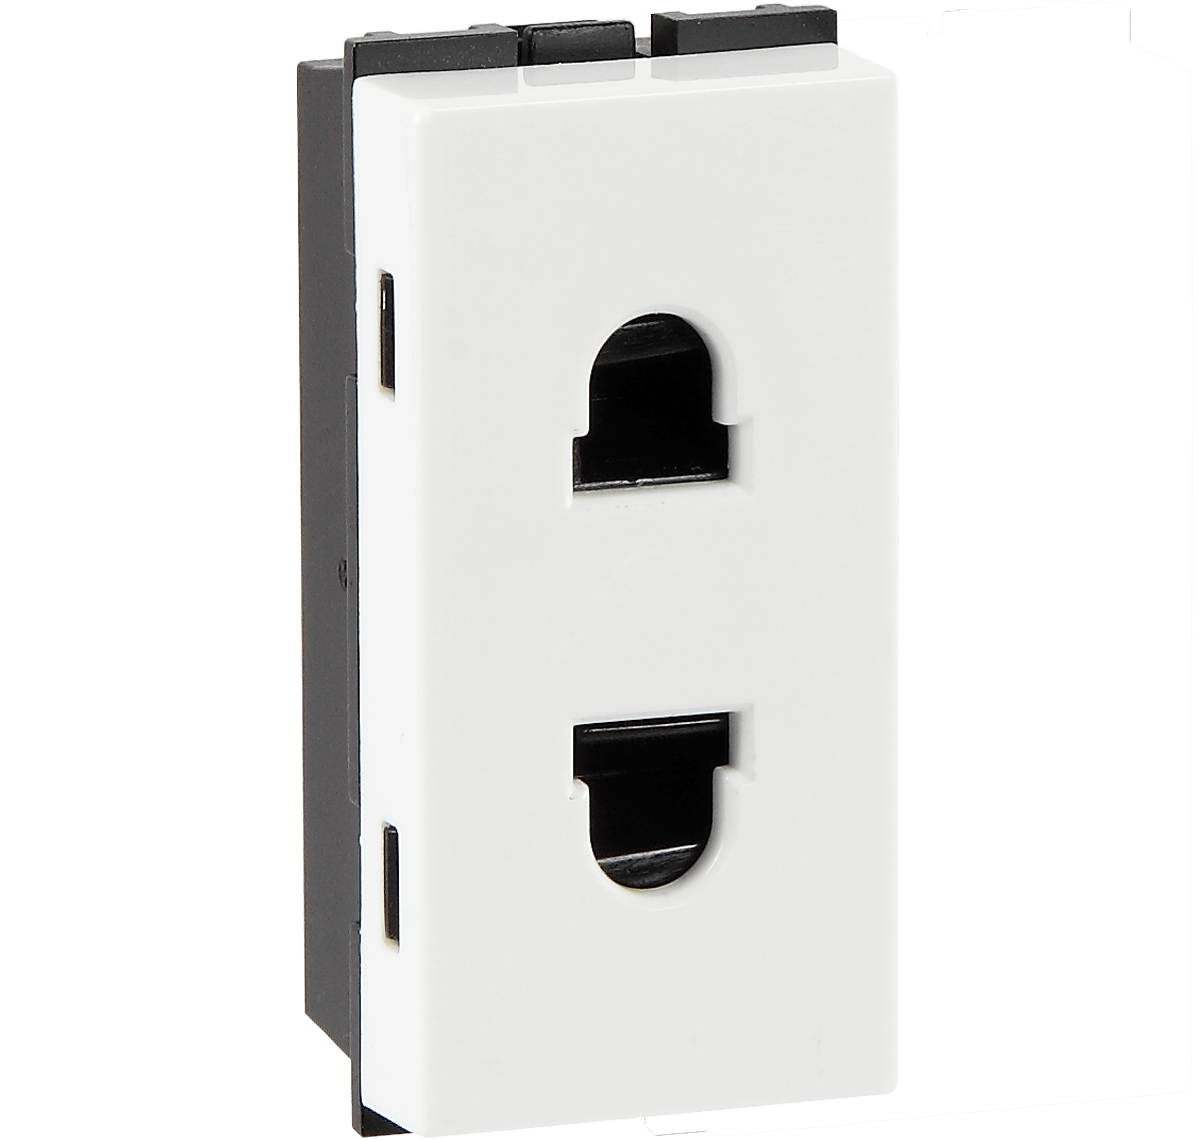 6 A 2 Pin Shuttered Socket